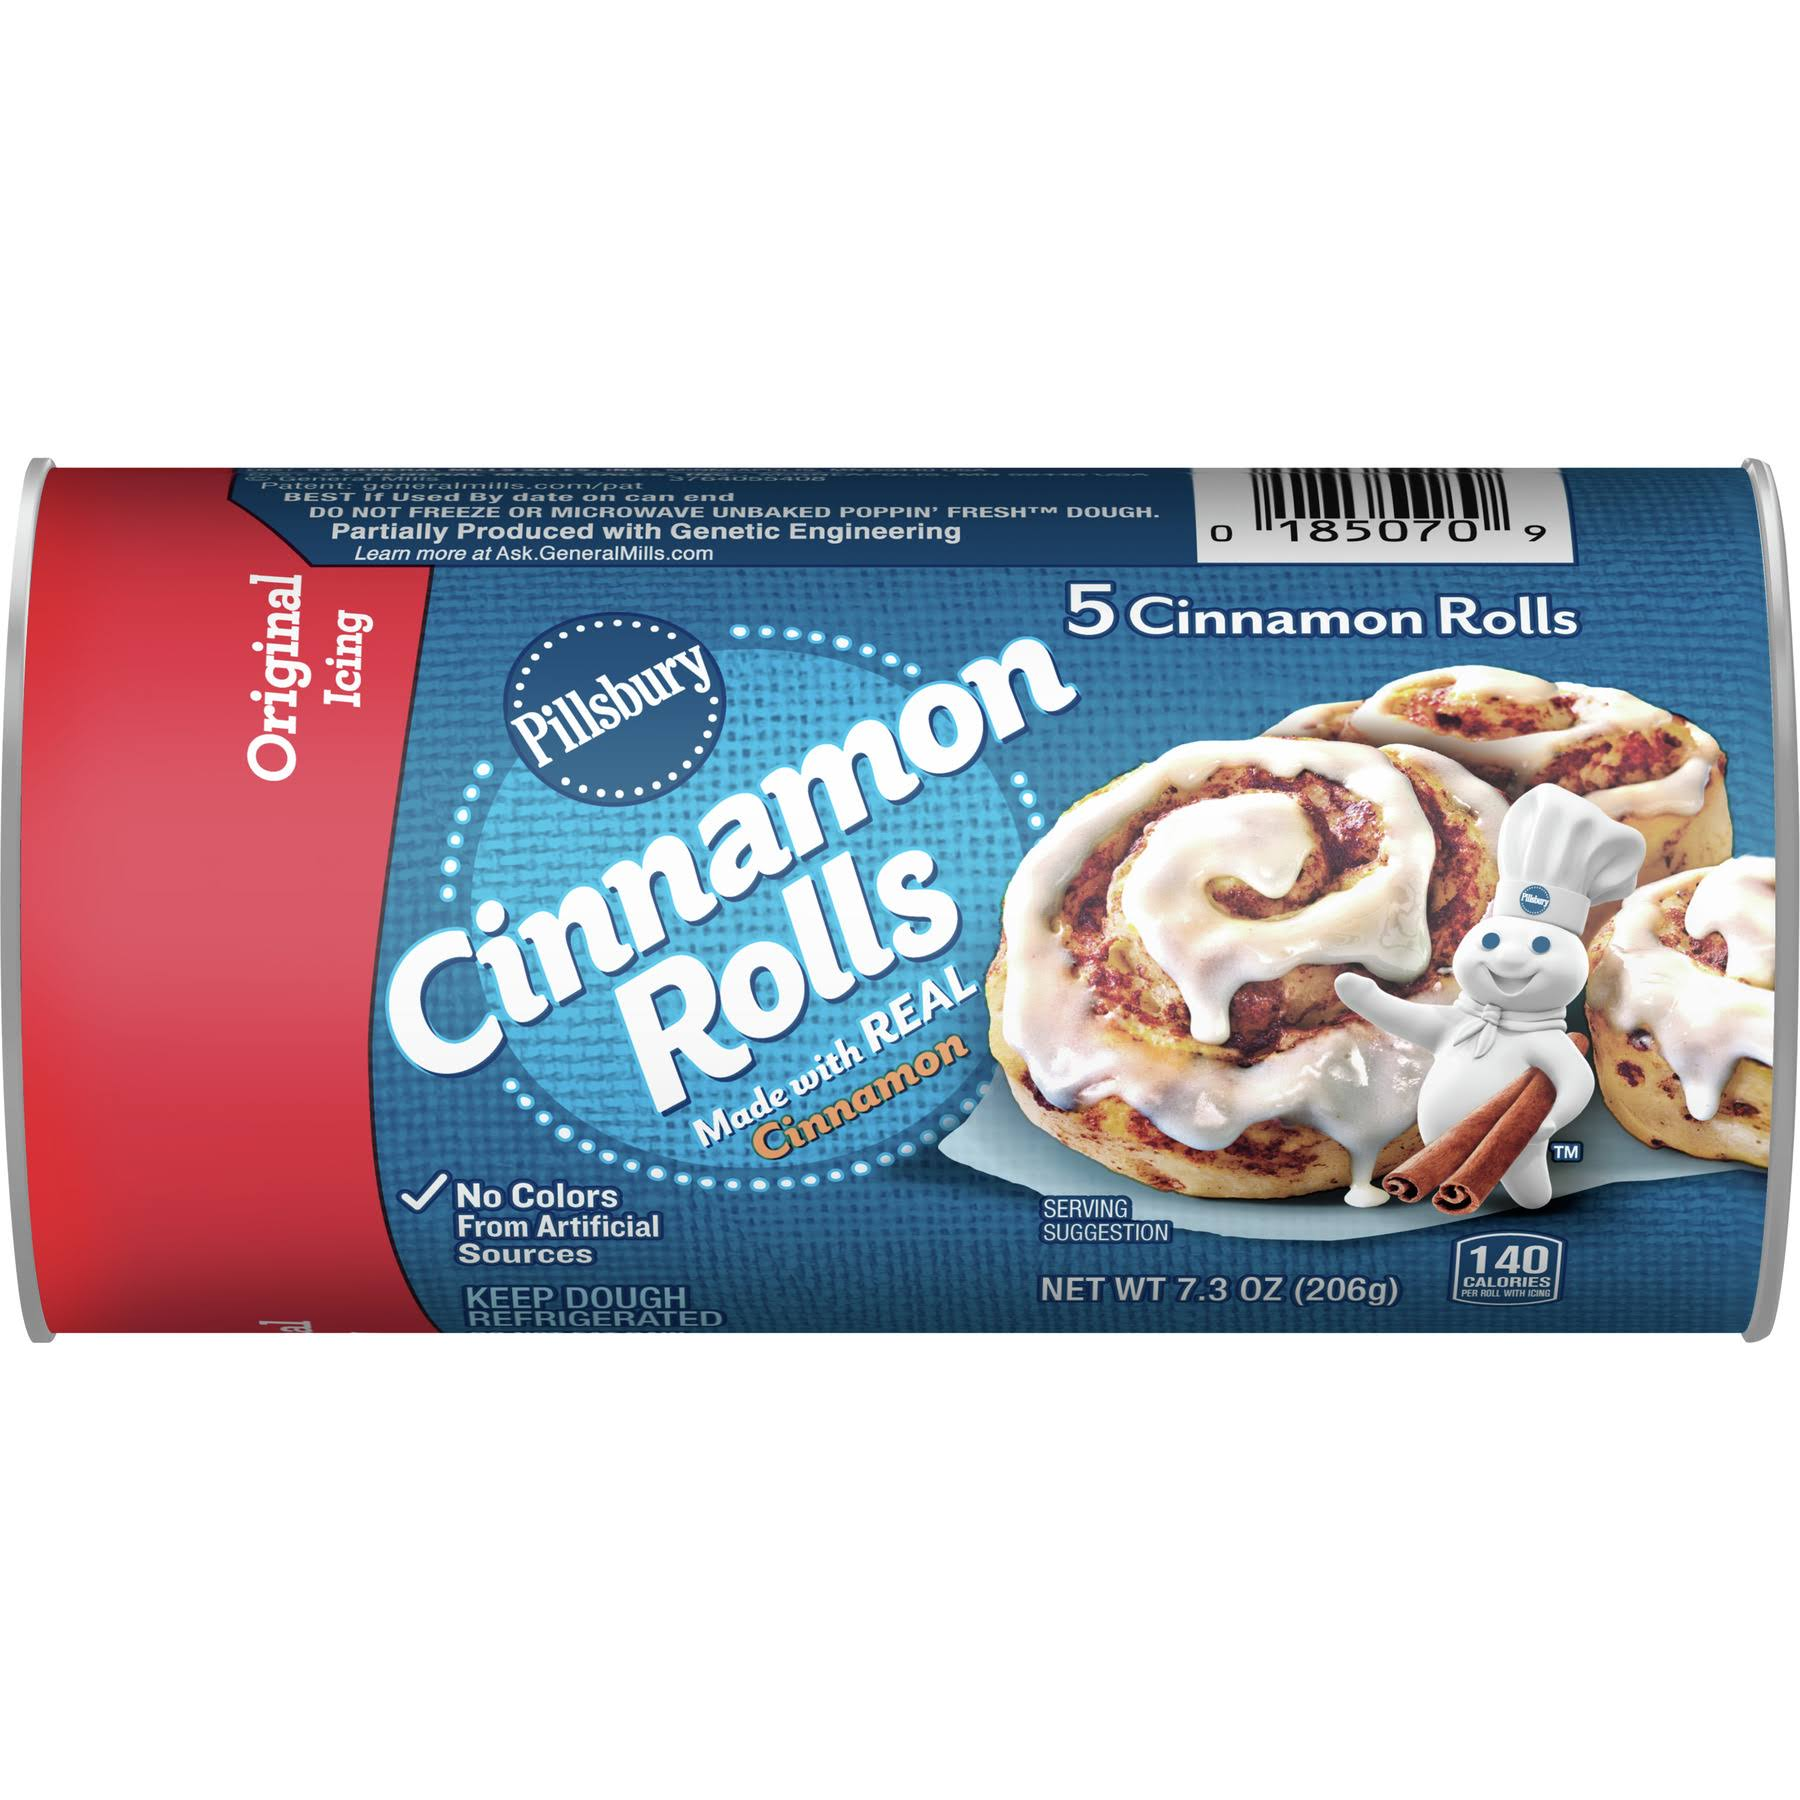 Pillsbury Original Icing Cinnamon Rolls - 5ct, 7.3oz